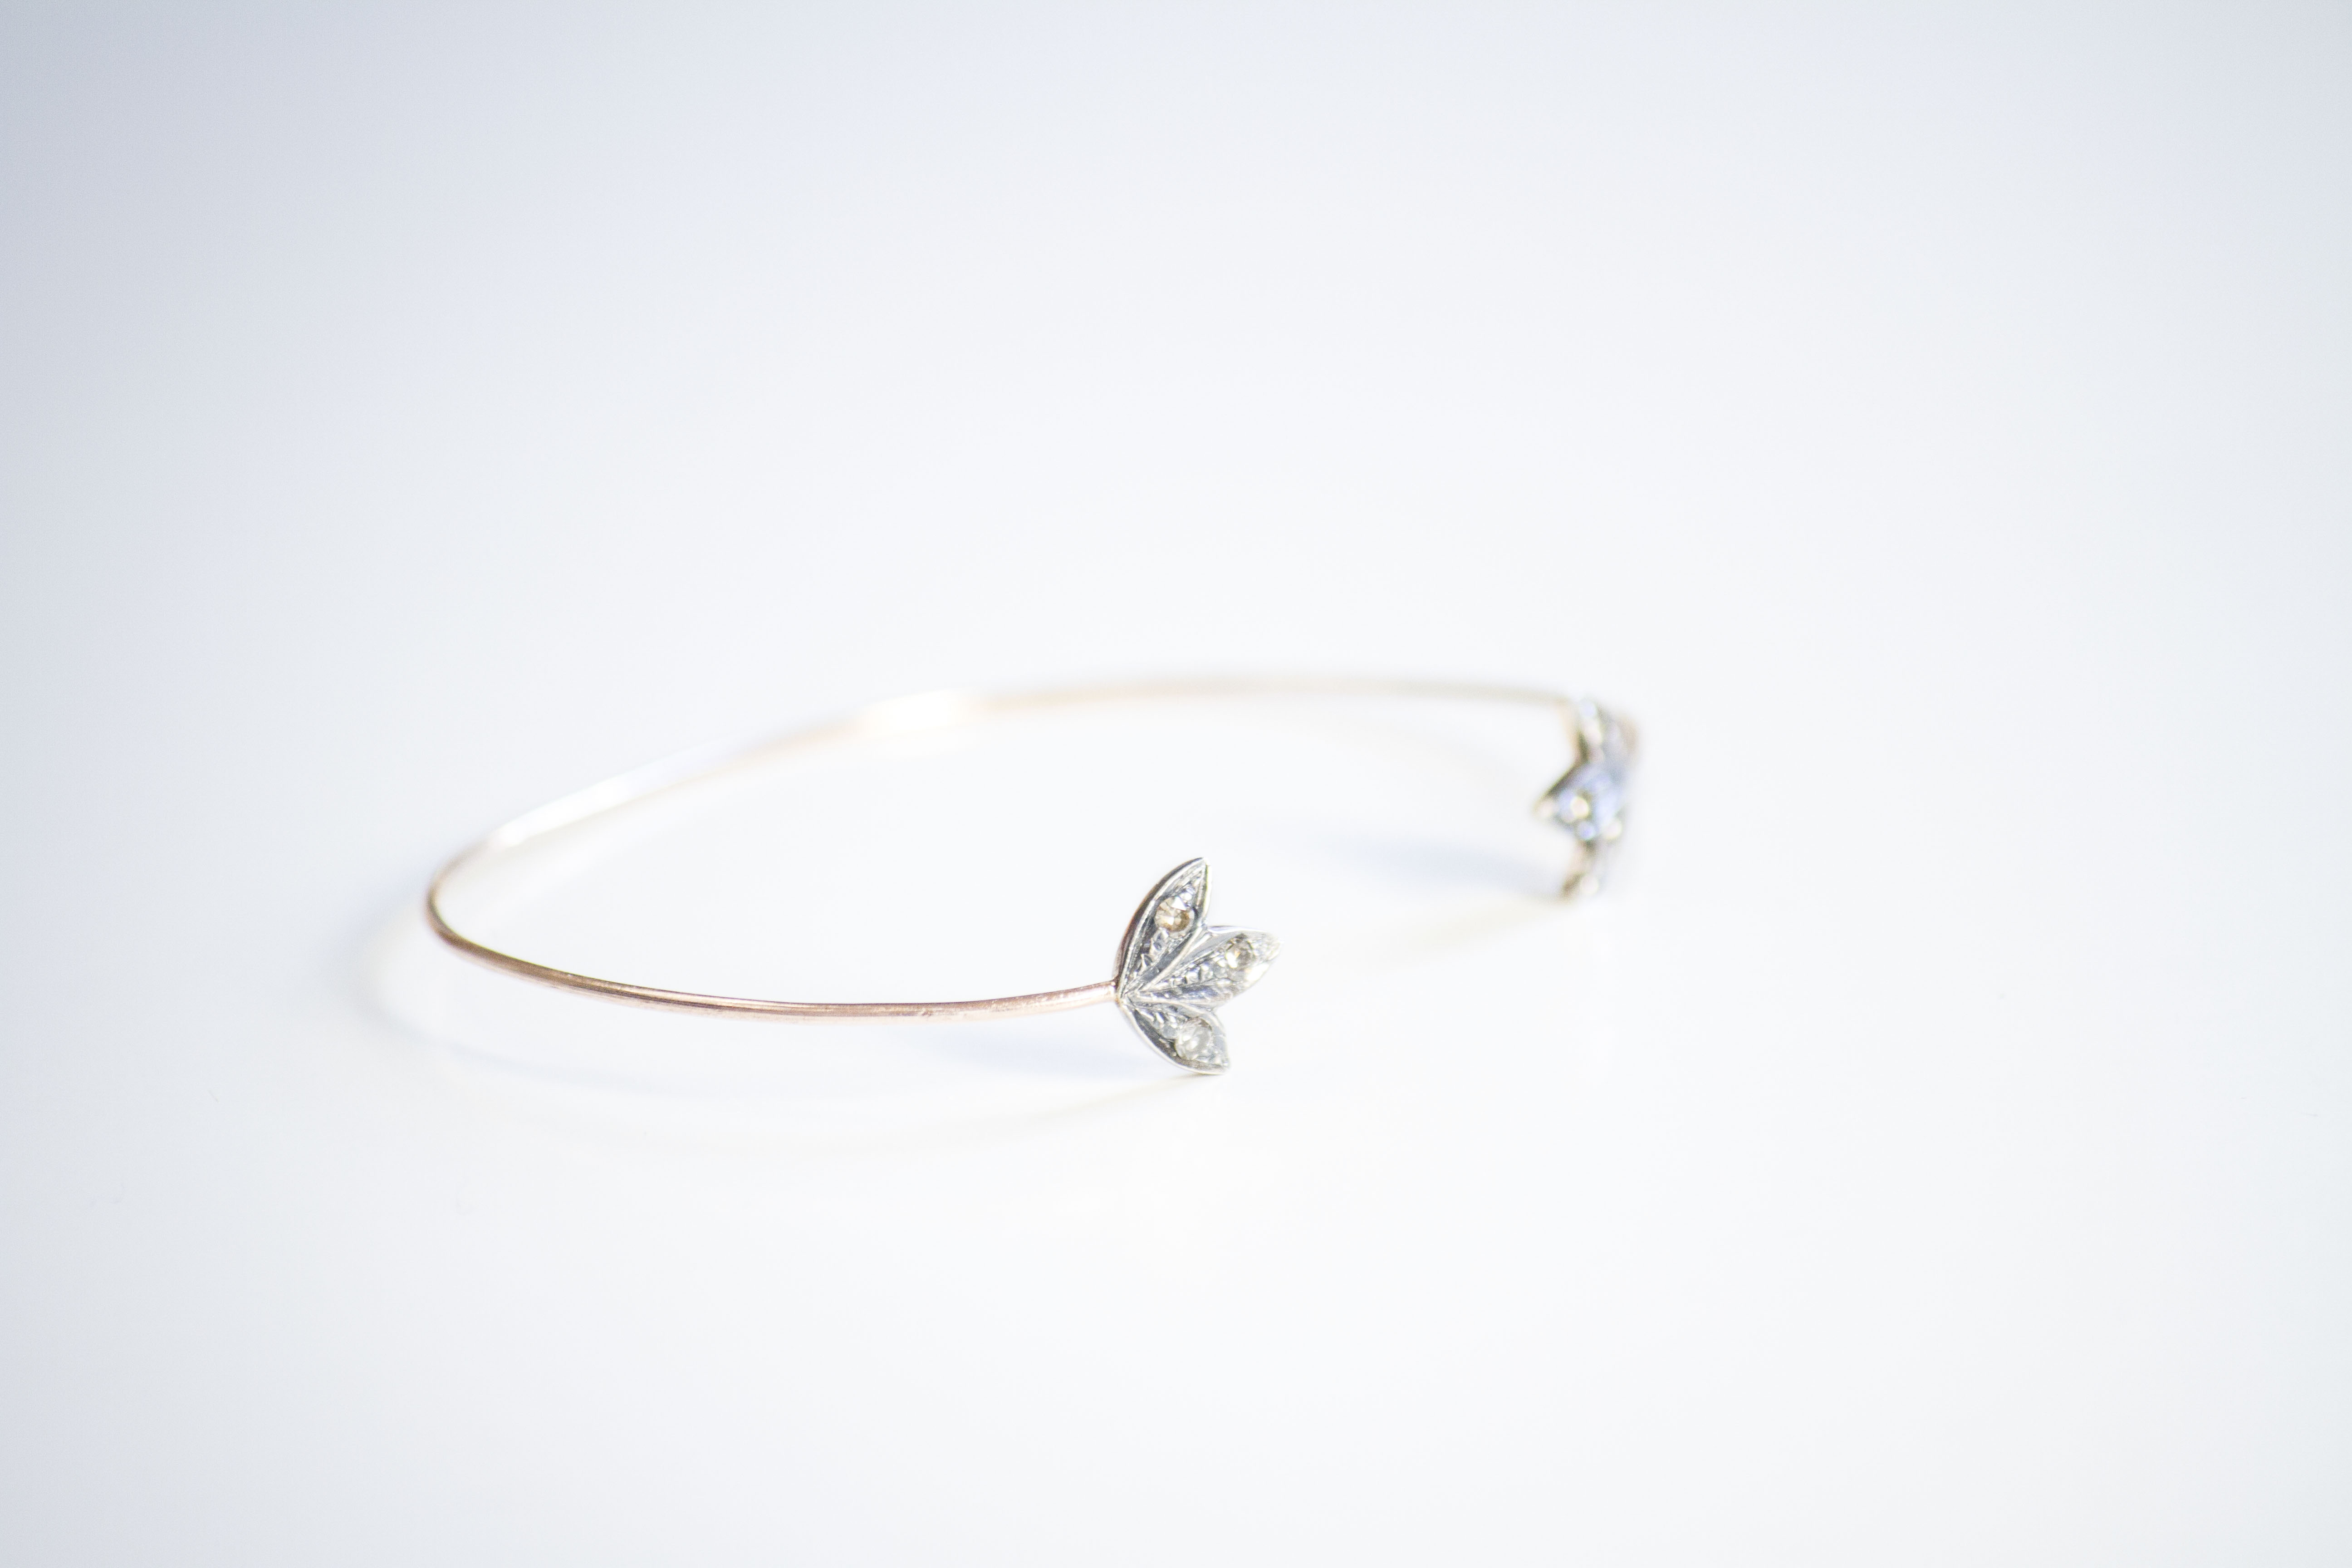 lotus bracelet Inspired by the Lotus flower, fine bangle in 14k rose gold with inset diamonds